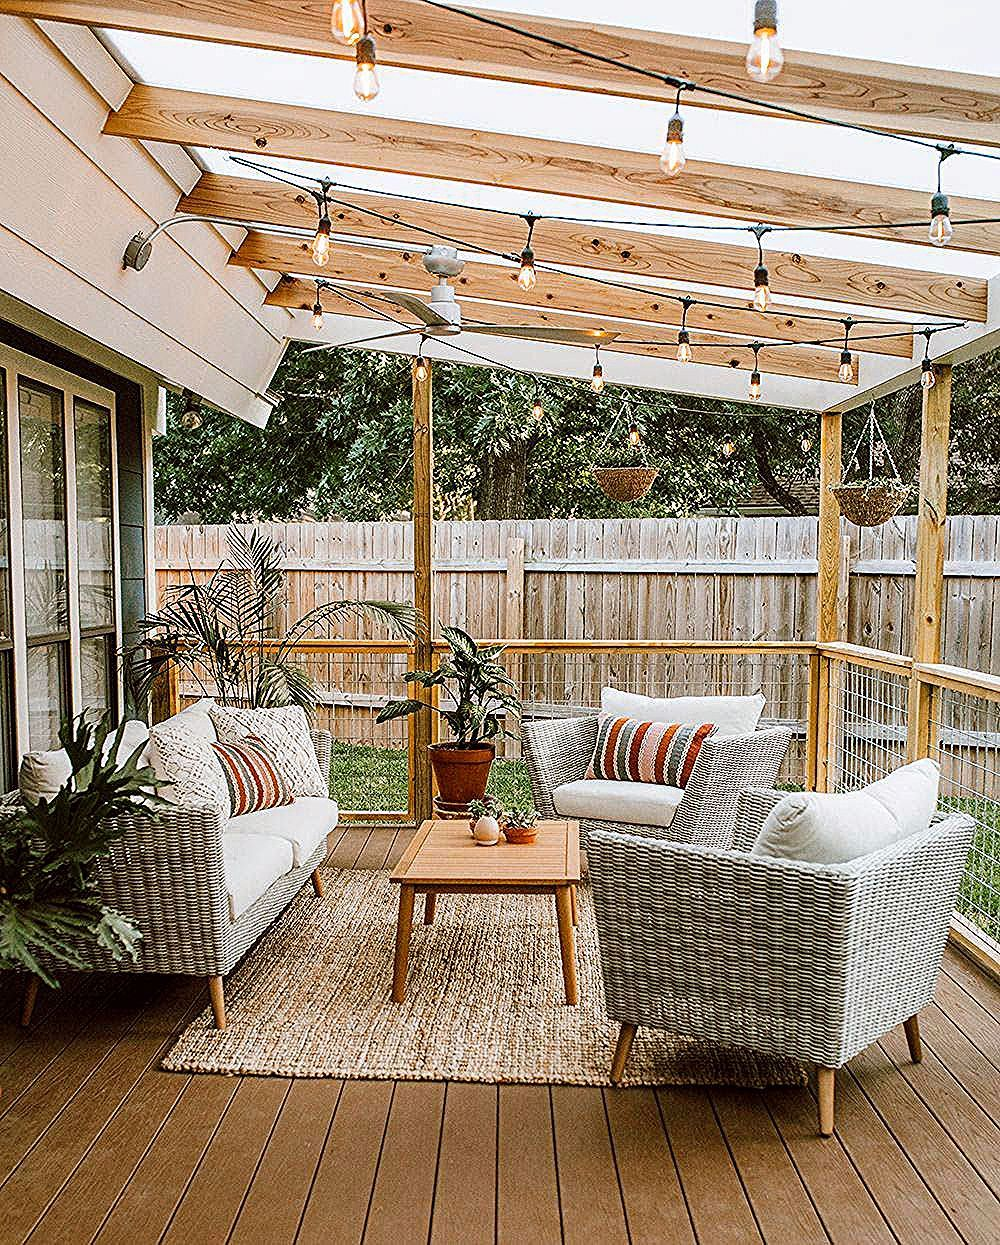 Patio Ideas - Enhancing your patio can be difficult, but we have you covered. From lights to outdoor seats to fire pits, below are the most effective exterior patio ideas to motivate your patio ... #patioideas #gardendesign #patioideaspinterest